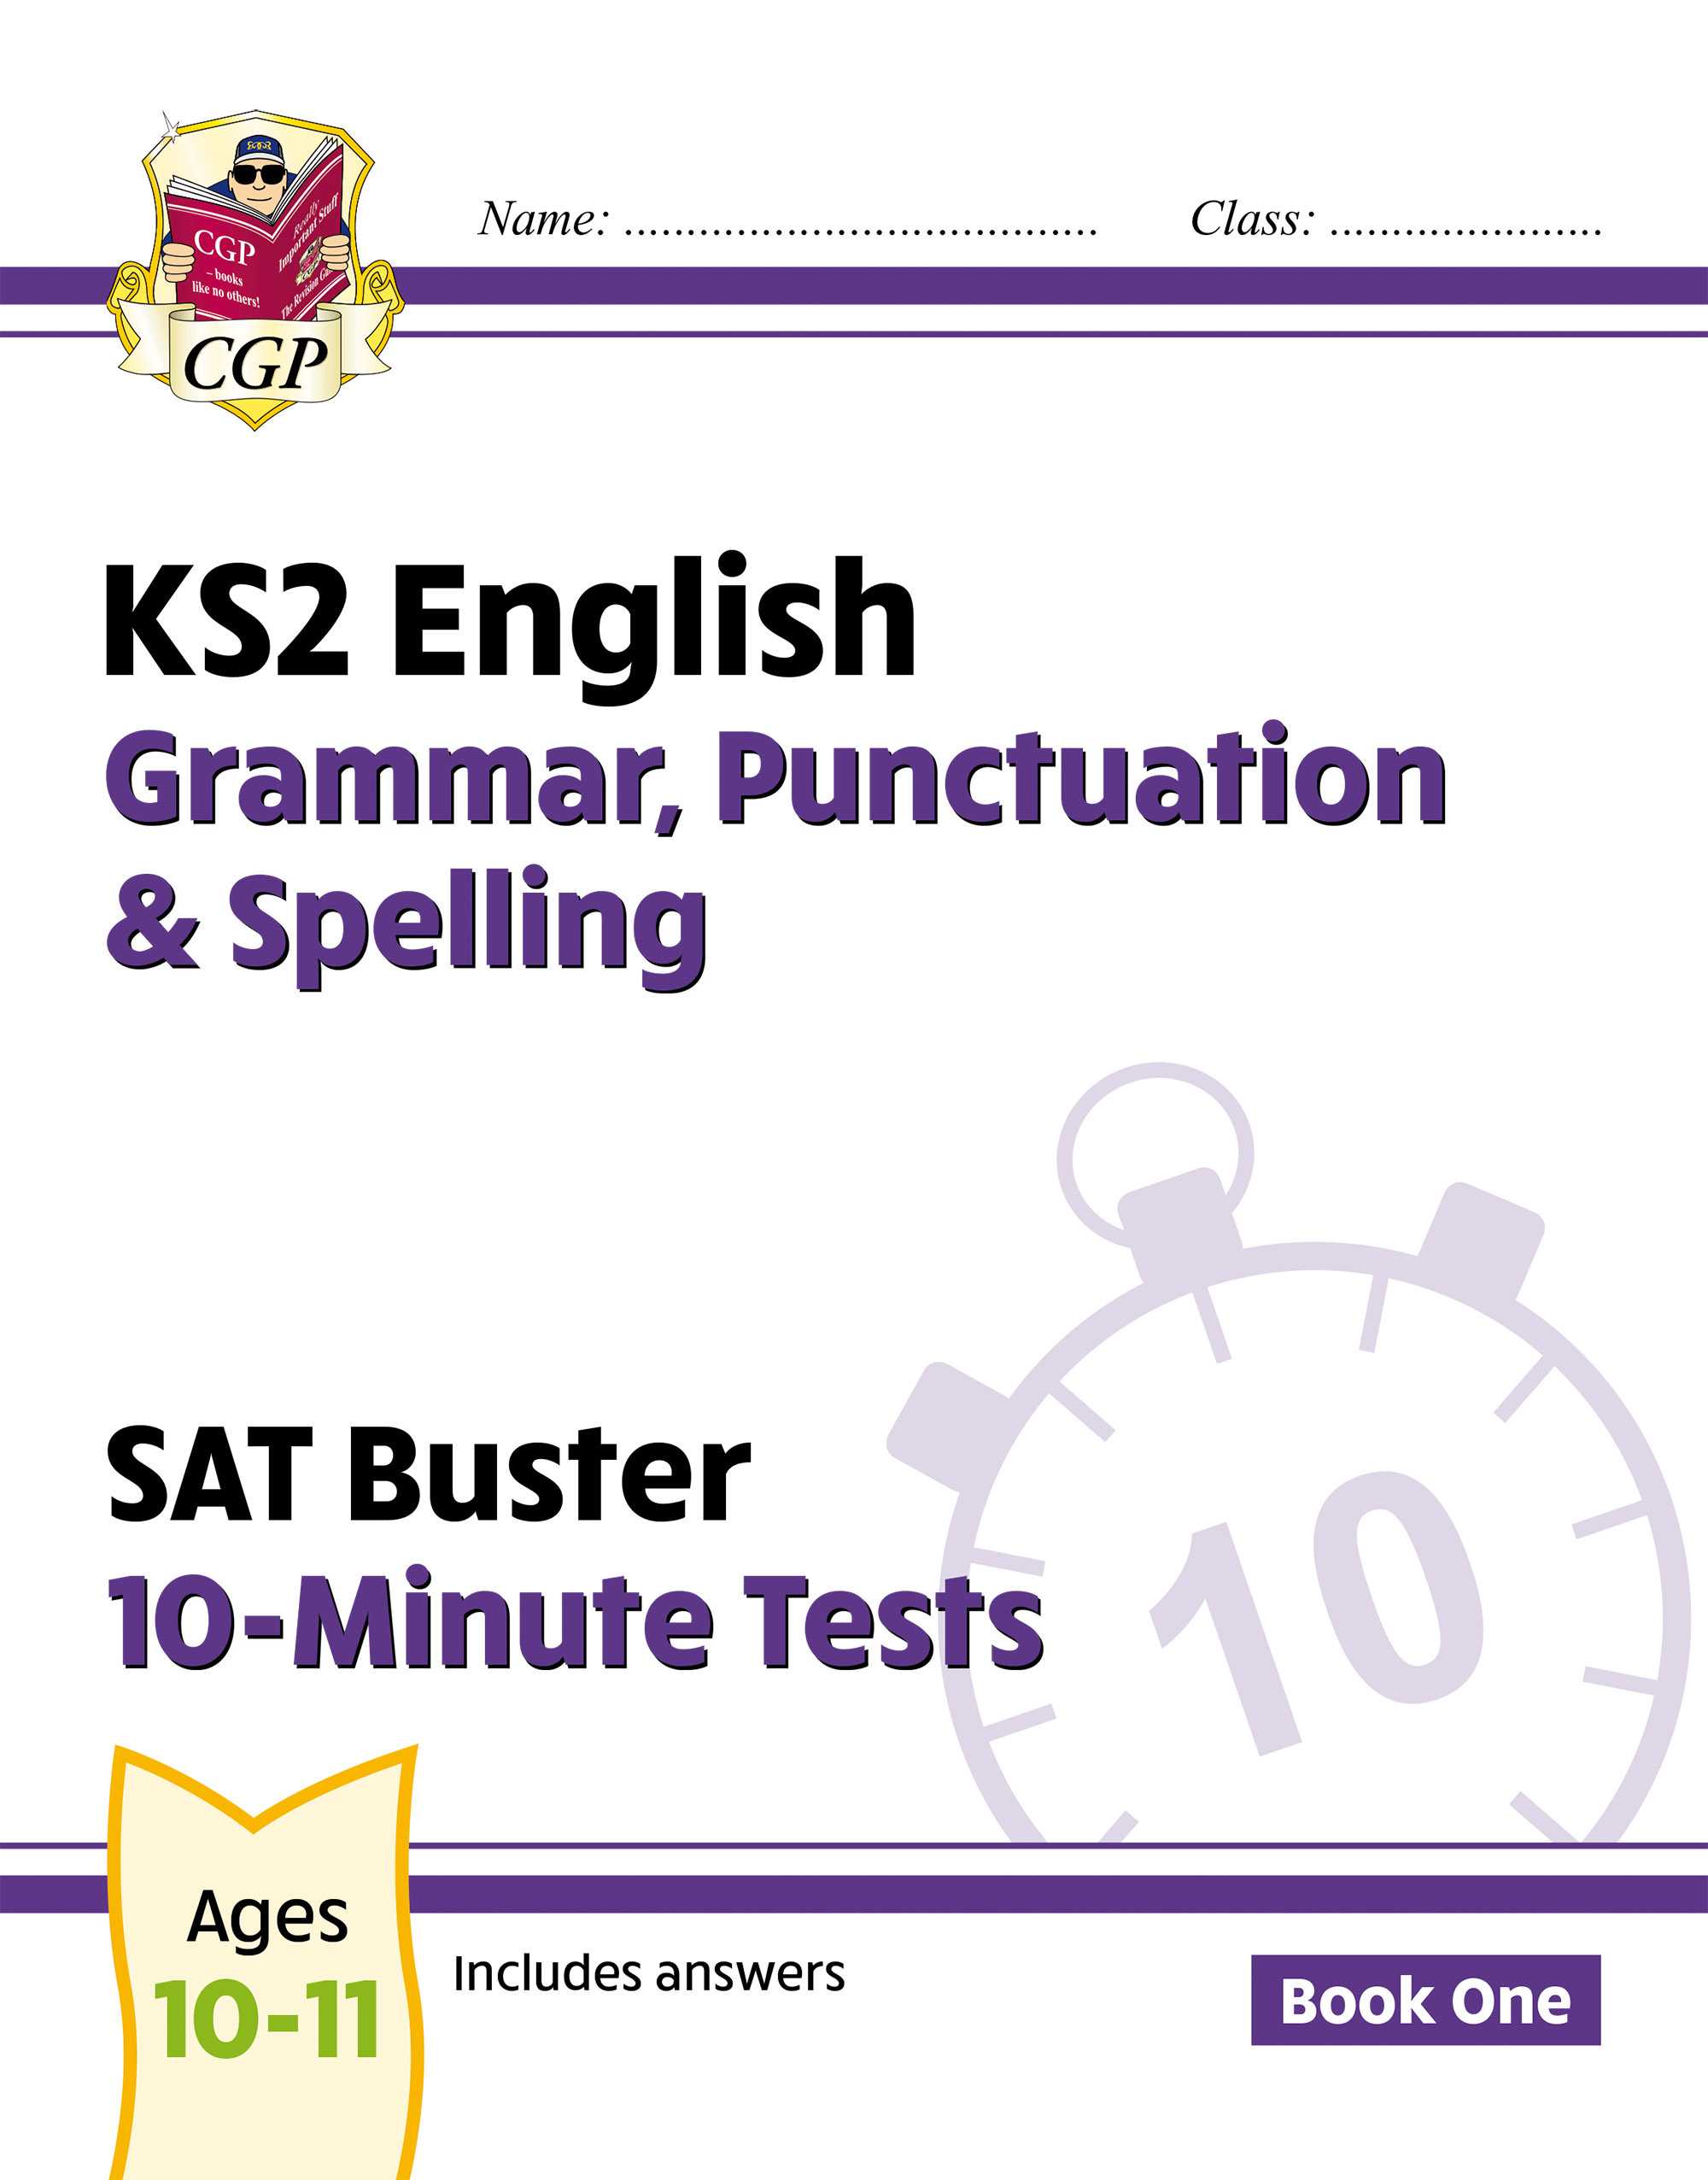 EXPG23DK - New KS2 English SAT Buster 10-Minute Tests: Grammar, Punctuation & Spelling - Book 1 (for